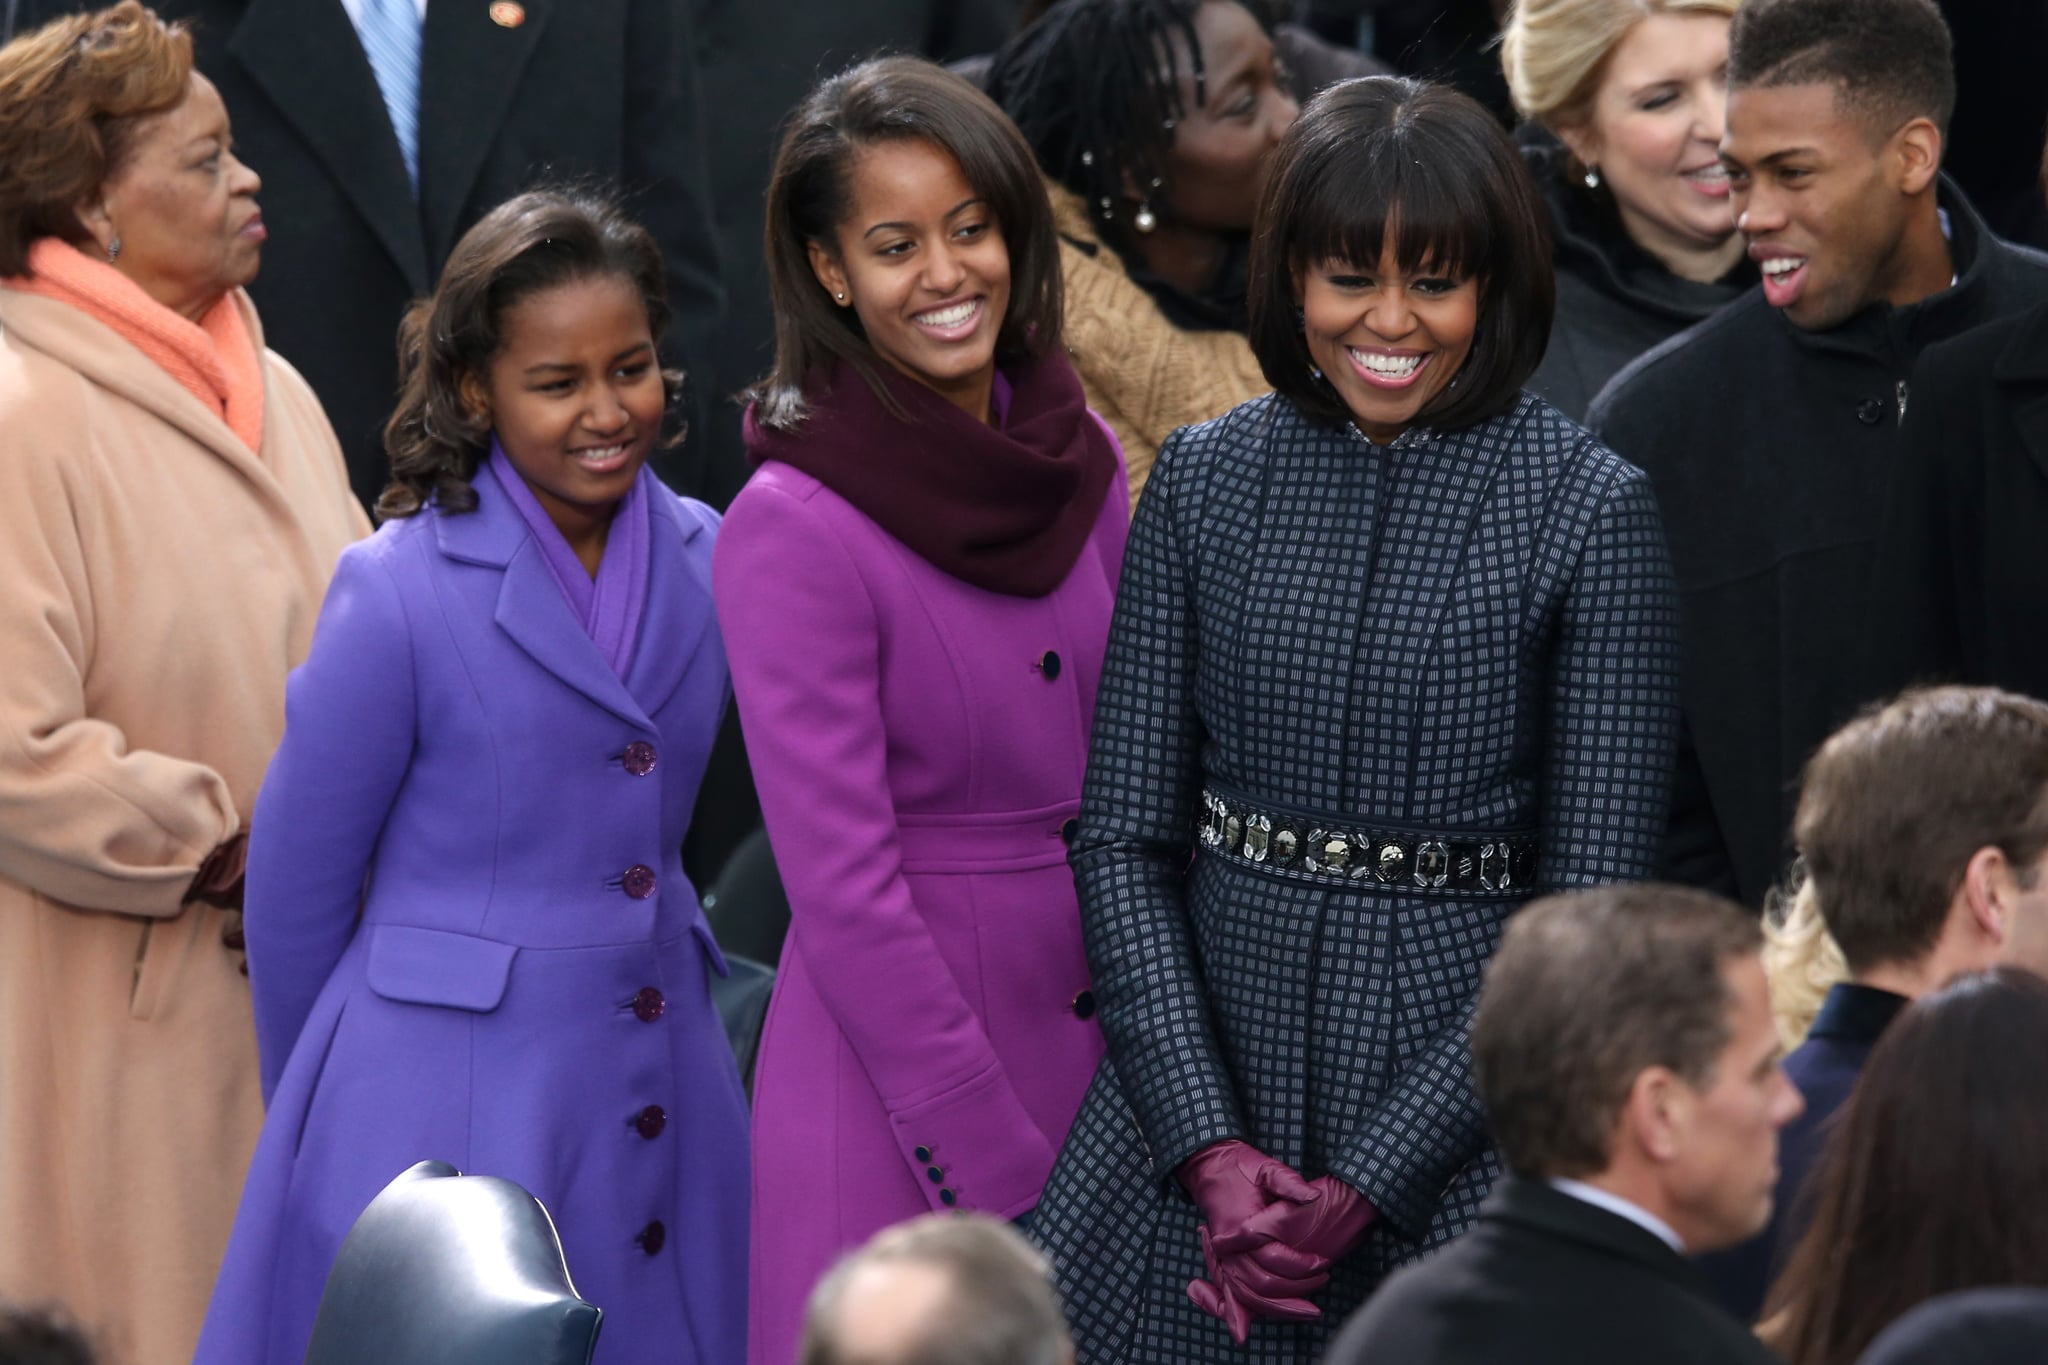 The Obama ladies wore their prettiest coats for dad's second inauguration.